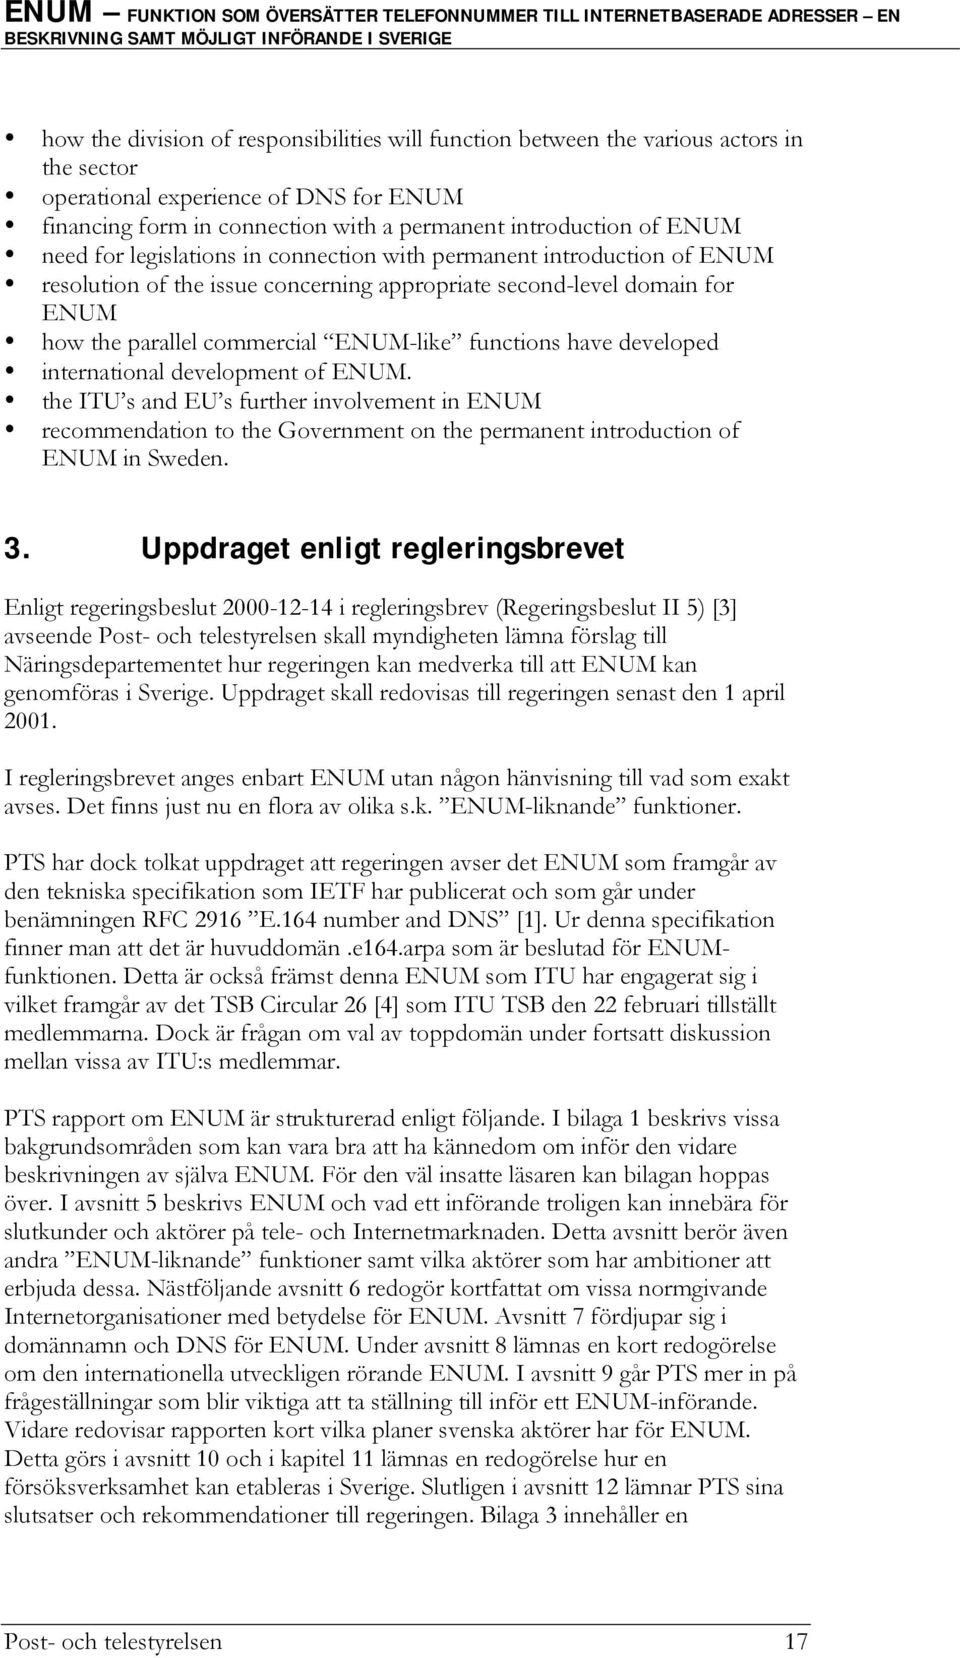 have developed international development of ENUM. the ITU s and EU s further involvement in ENUM recommendation to the Government on the permanent introduction of ENUM in Sweden. 3.